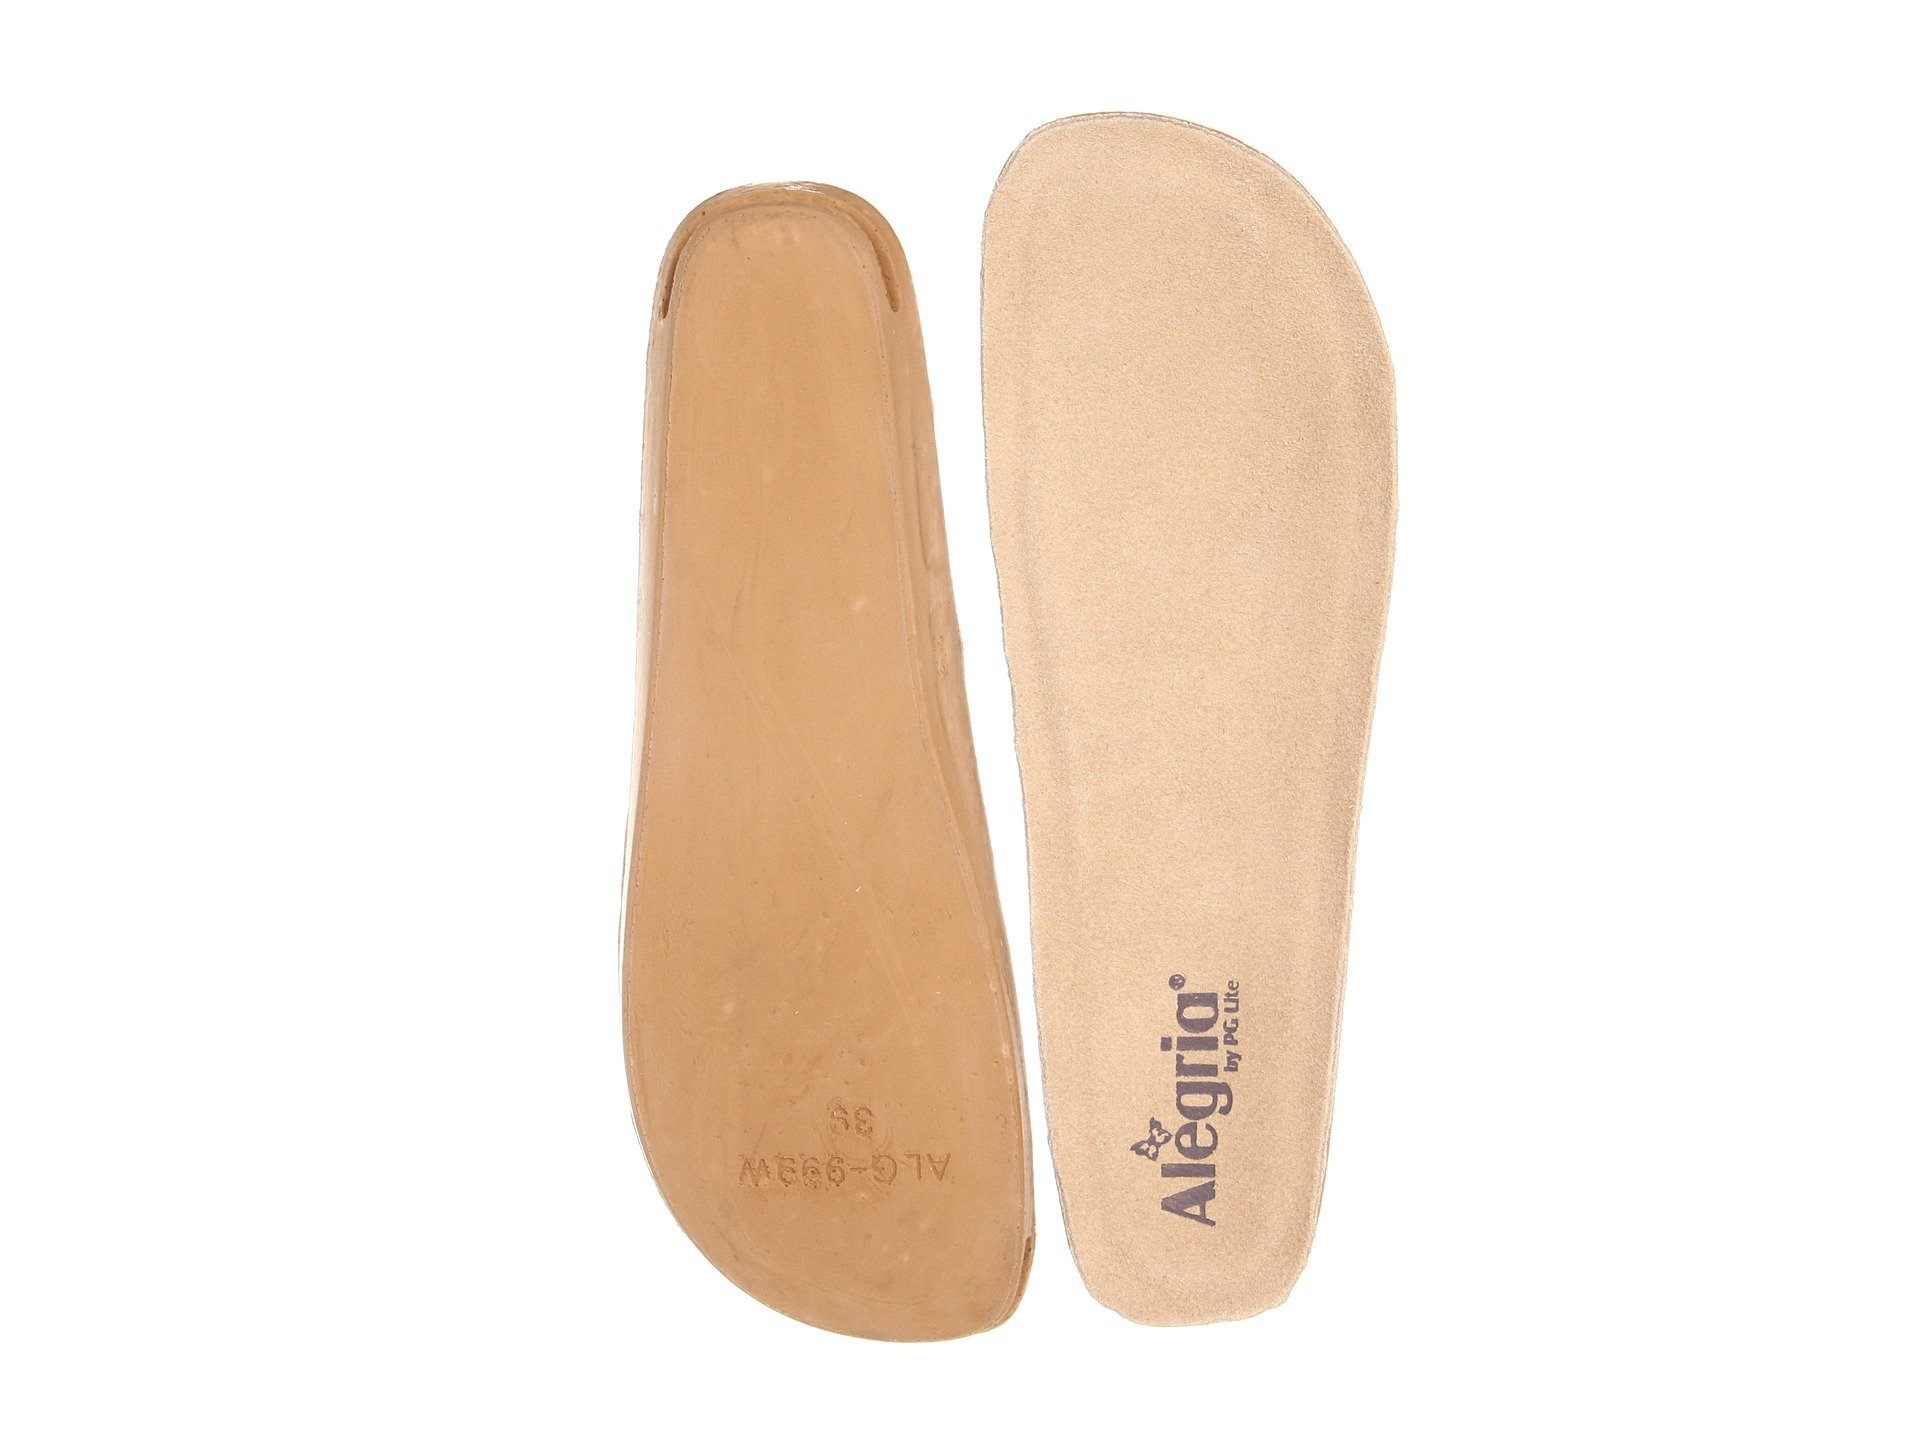 Wide Insole Wide Alegria Alegria Replacement Replacement Insole Tan xnPwSn